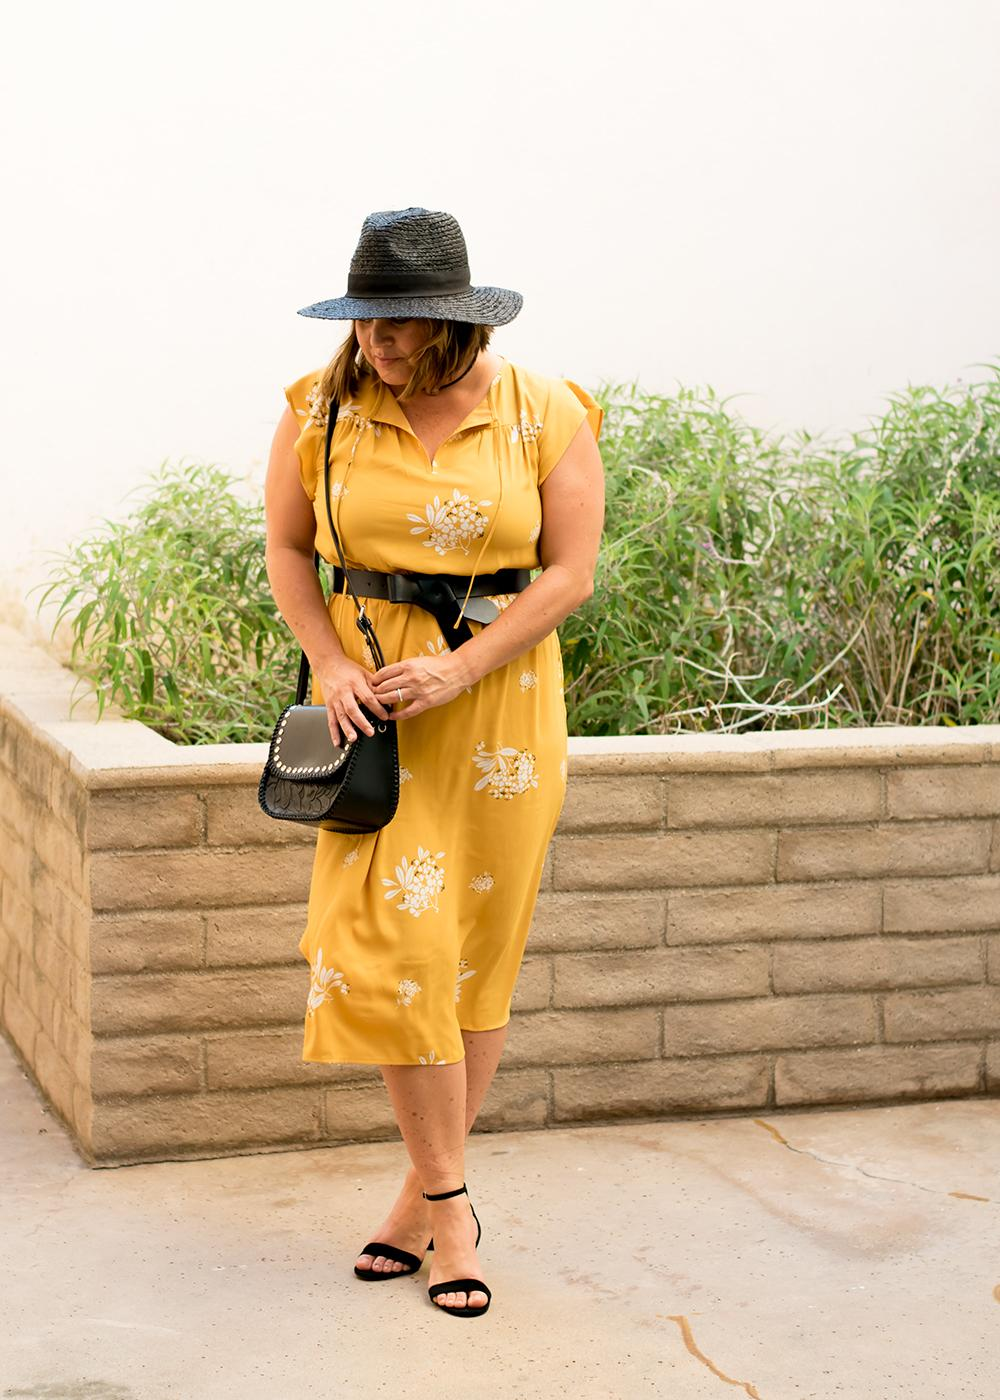 Casual-Outfit-Los-Angeles-Fashion-Street-Style-Blogger-Personal-Stylist-Festival-Style-578